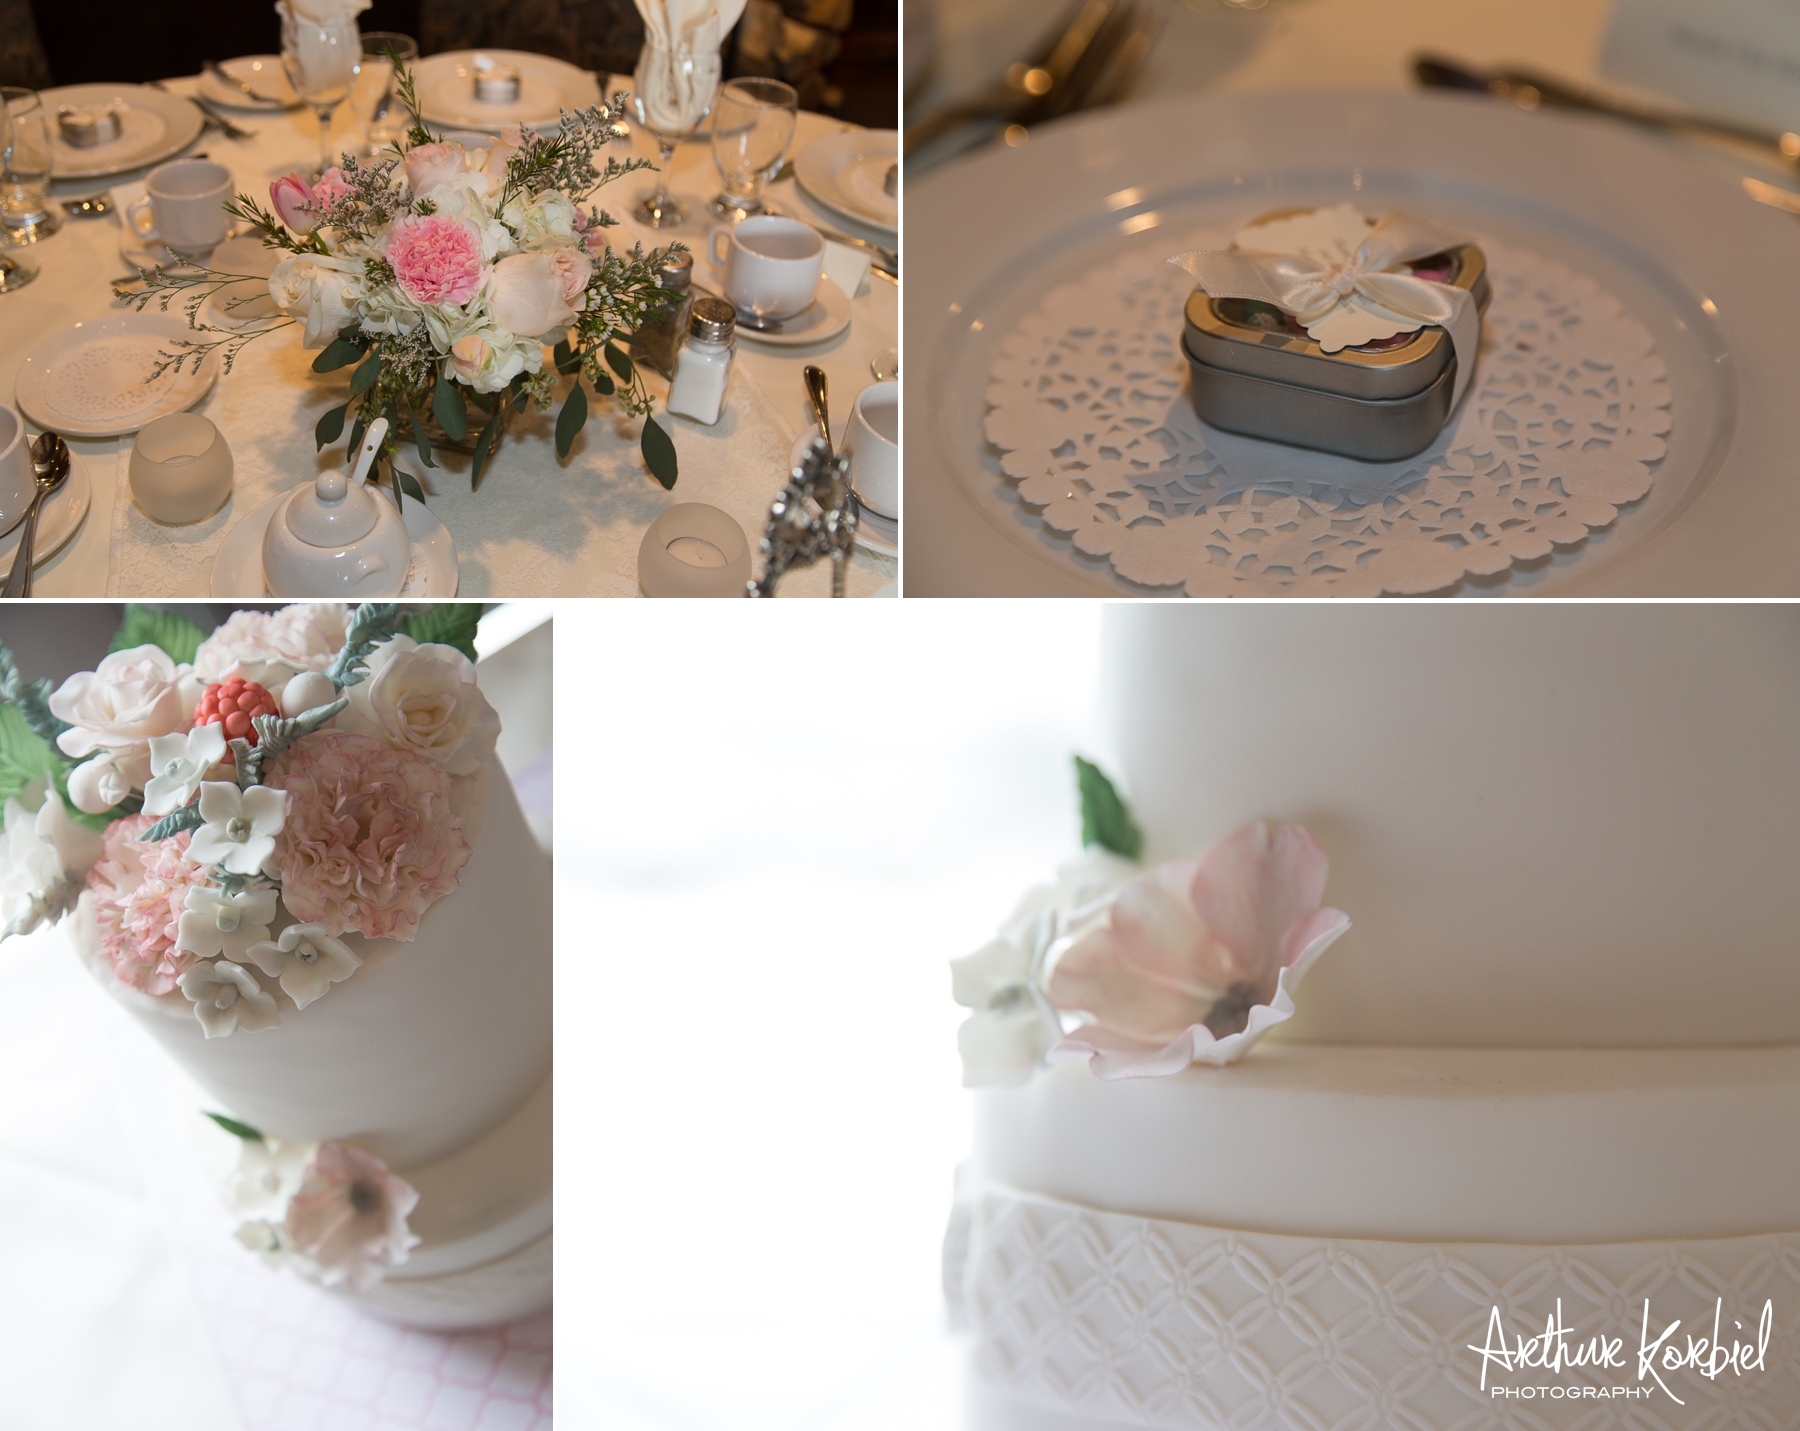 Arthur Korbiel Photography - London Wedding Photographer - Windermere Manor _004.jpg